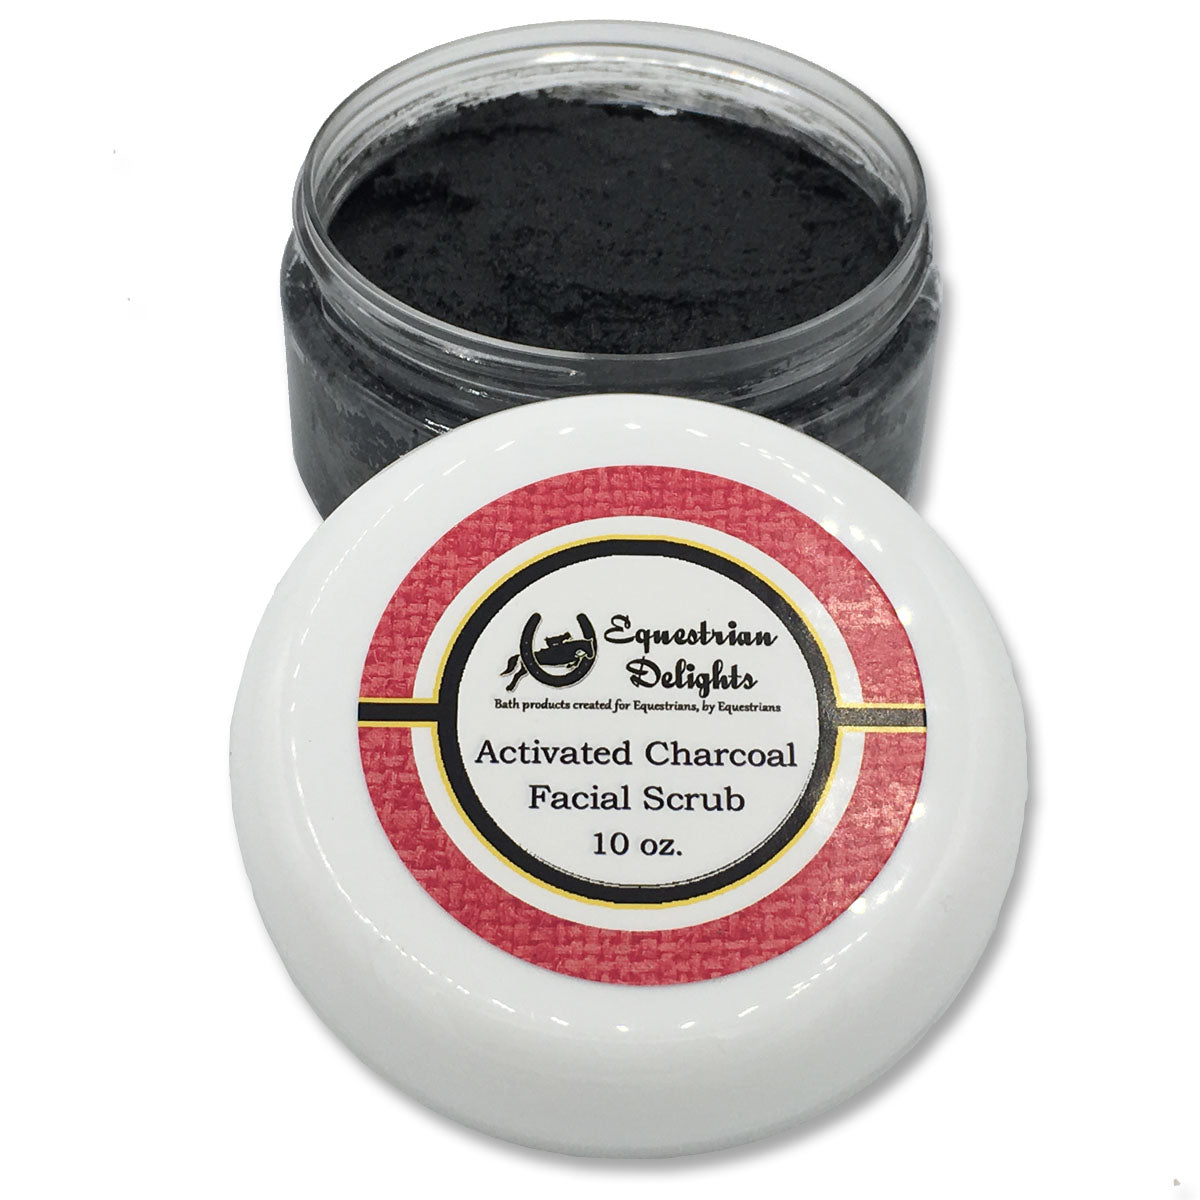 Activated Charcoal Facial Care Boxed Set